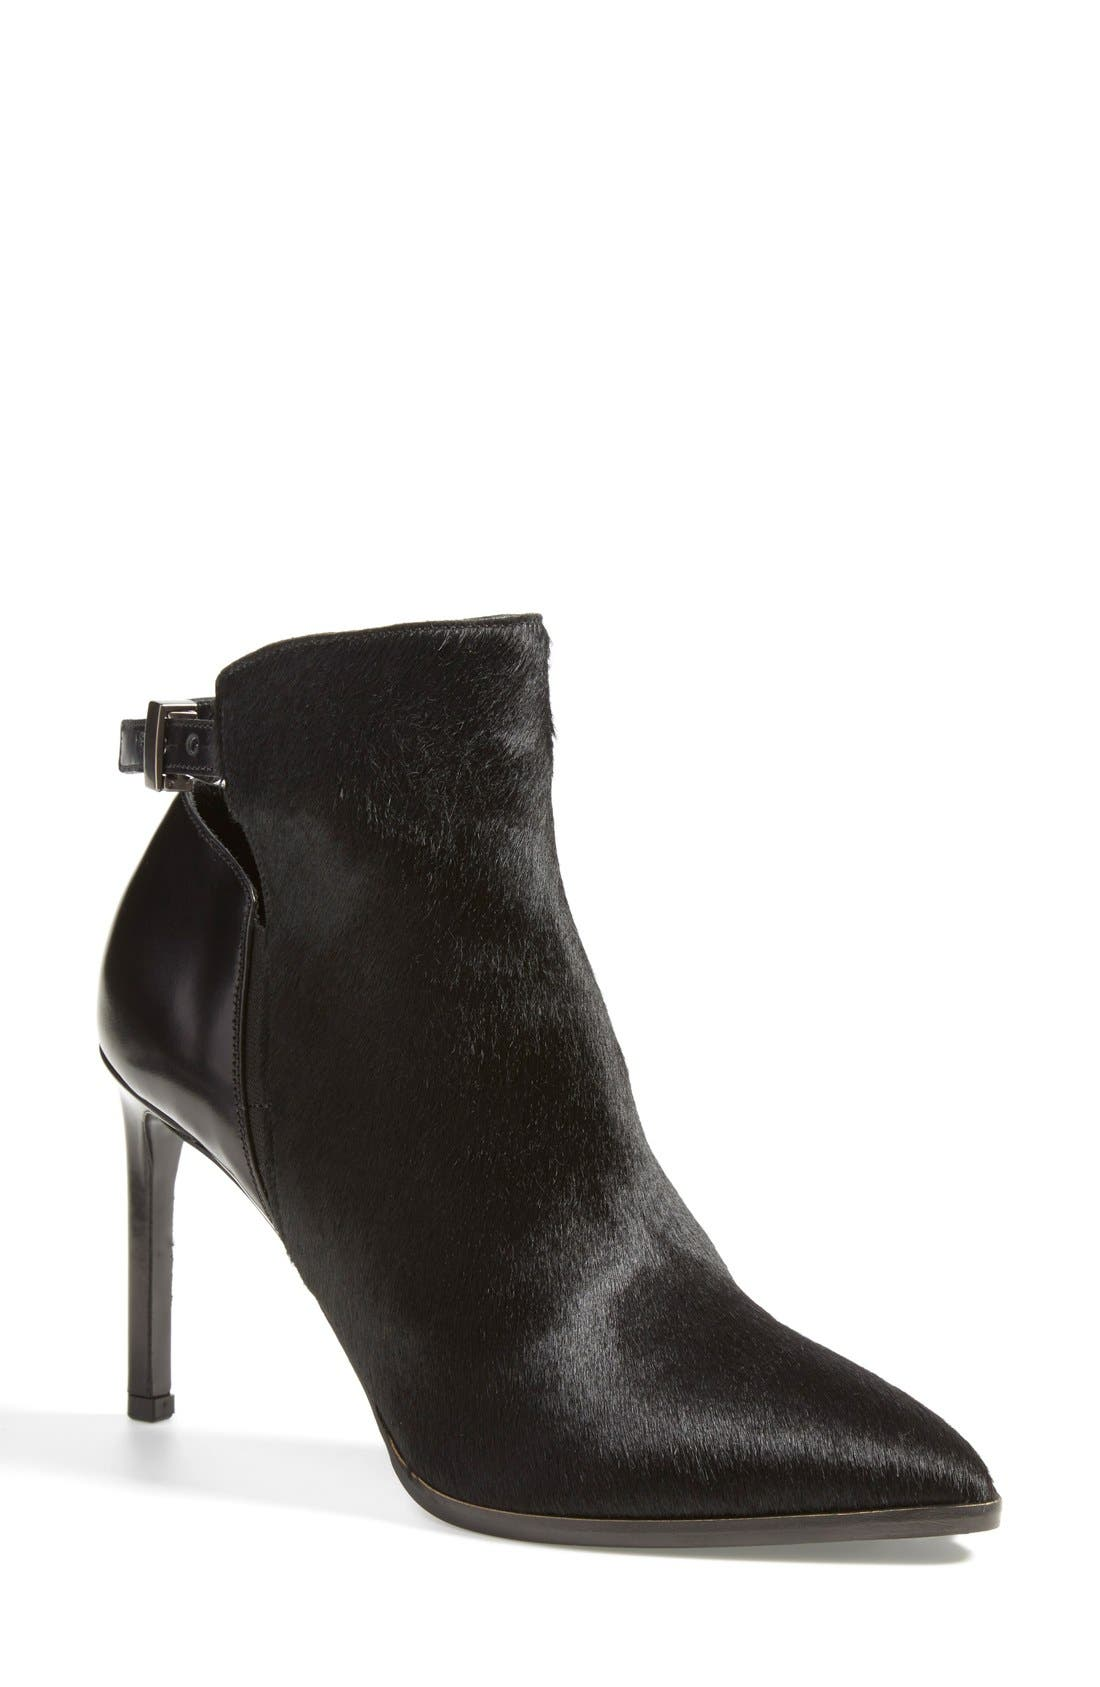 'Calla' Leather & Calf Hair Bootie,                             Main thumbnail 1, color,                             Black